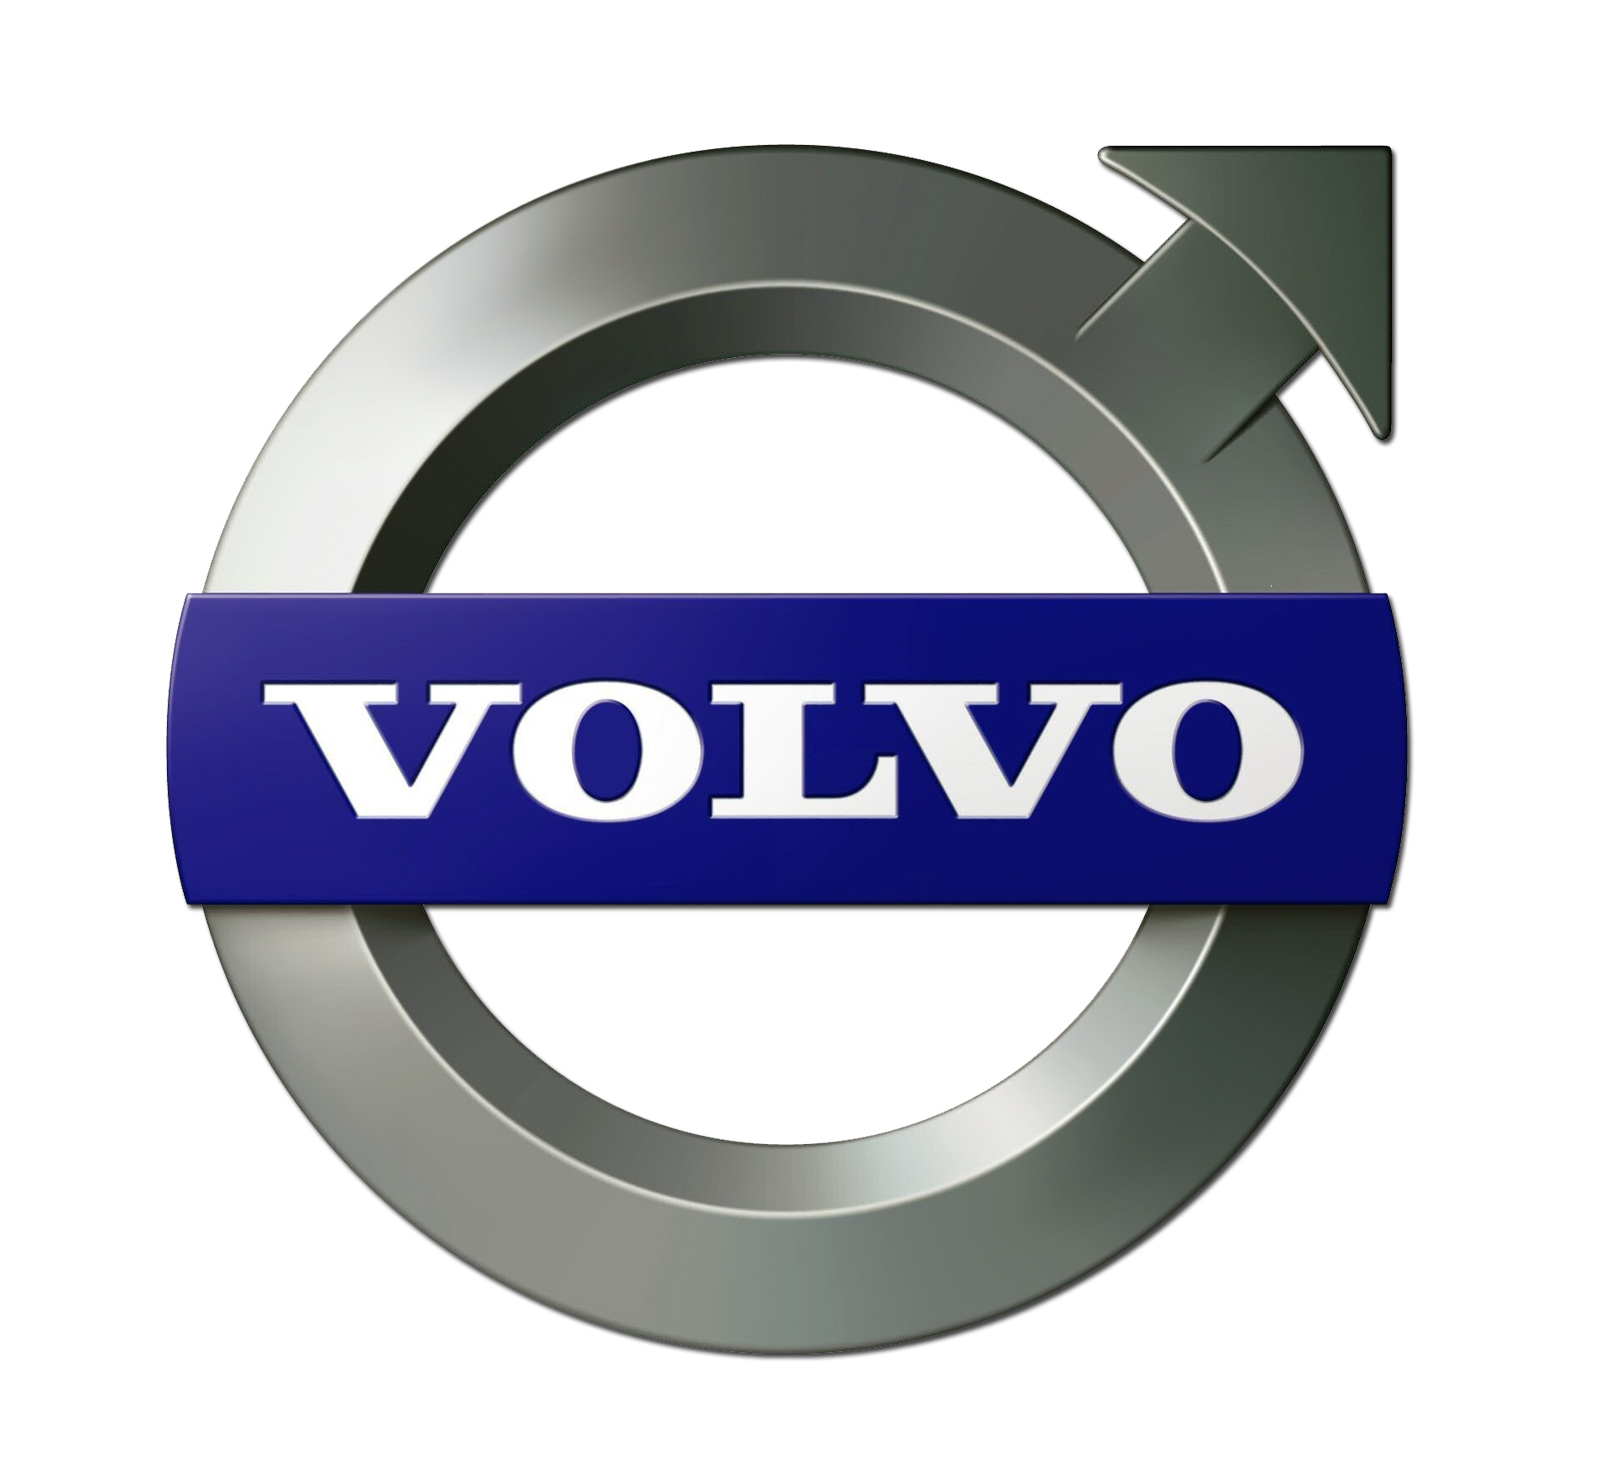 2016 Volvo Xc70 New Car Review 254494 further Photos besides 2015 Volvo Xc 90 Review 31 besides The 2015 Volvo Xc60 Review furthermore 2015 Nissan Murano Interior Review. on 2015 volvo xc60 review